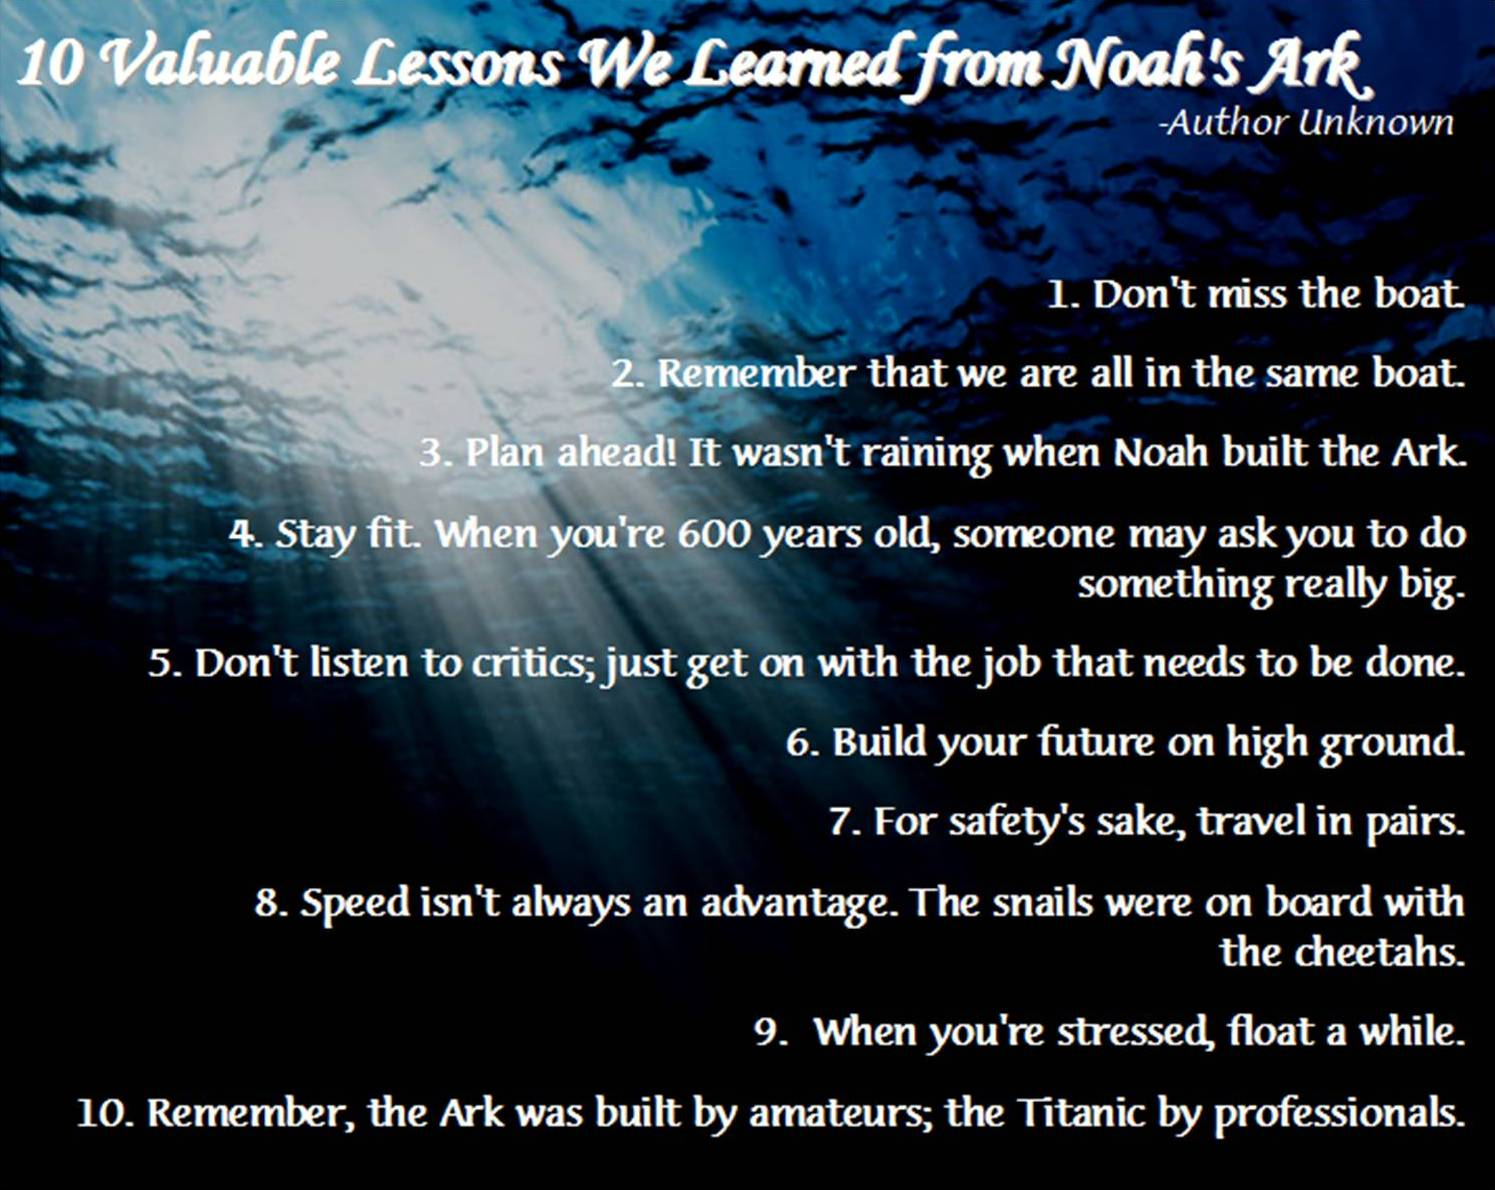 10 Valuable Lessons - Don't miss Wisdom's Boat!